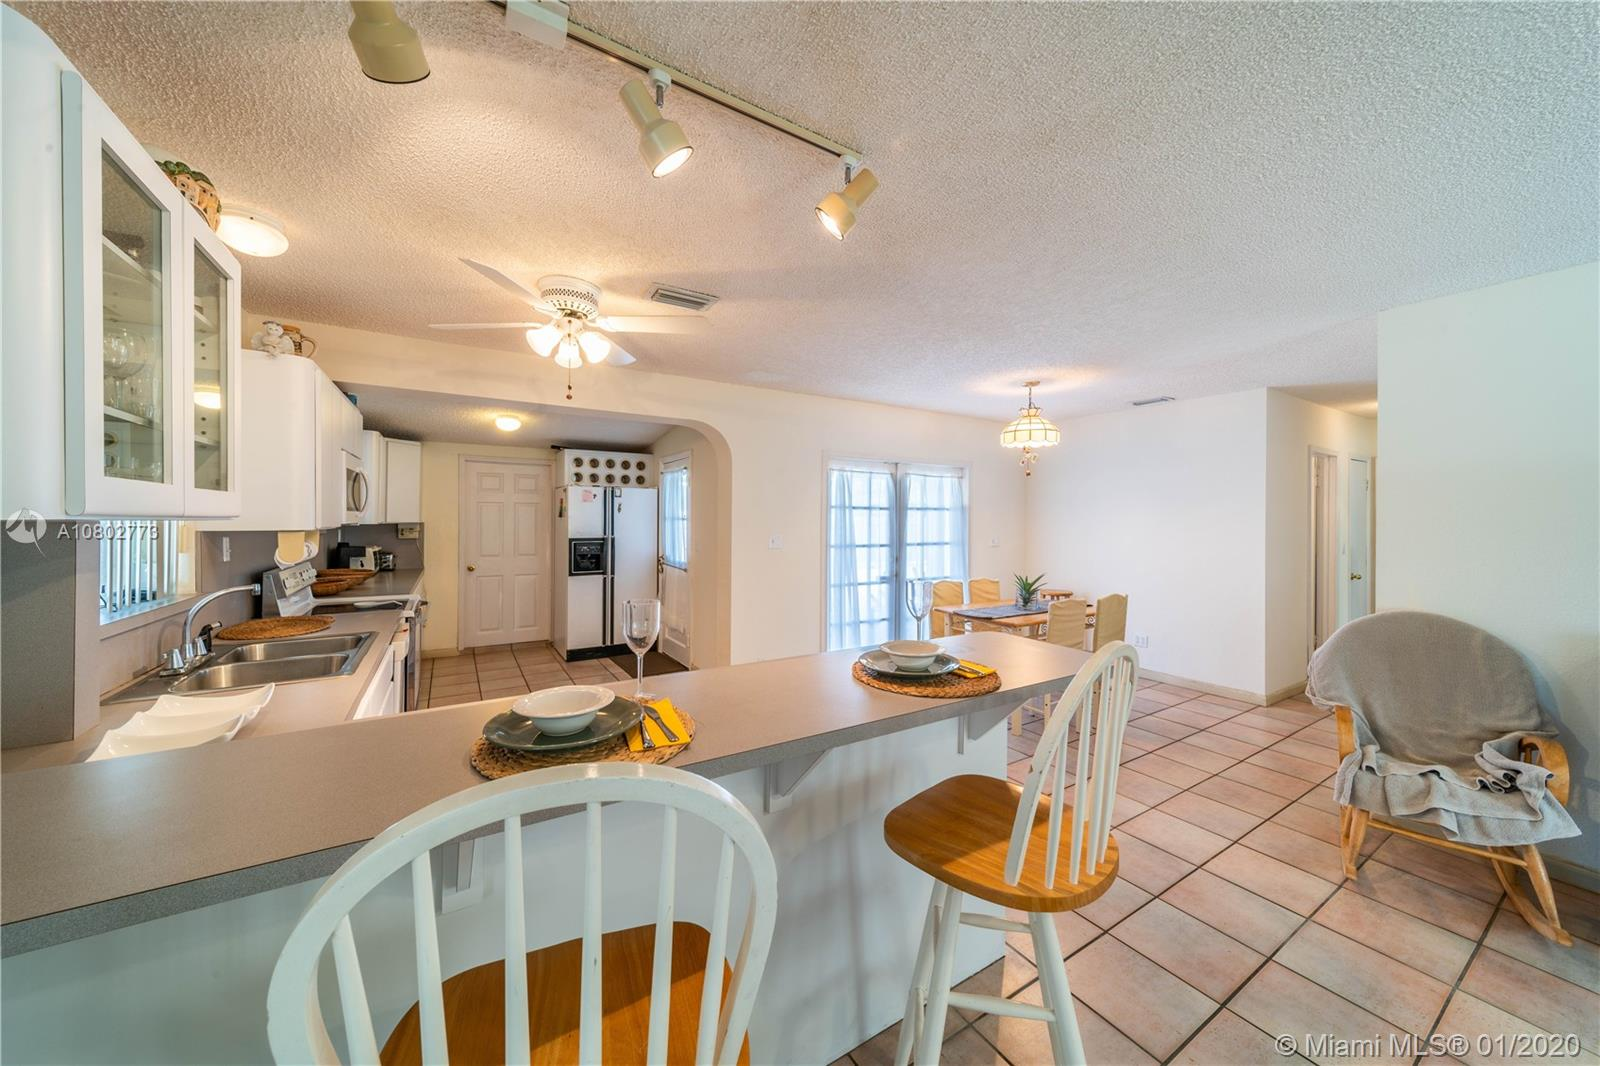 Great opportunity-own this 3 bed/3 bath home w/pool in a large lot in a quiet Cutler Bay street. This home has a great floorplan with tile floors in living areas and lots of natural light. French doors open to the patio/pool area.The open kitchen has a long counter-top (18 ft), eat-in counter/bar, white-formica cabinets in great shape-like new.  The oversize backyard offers plenty of room to entertain, the pool measures  24 ft x 12 ft and the great shaded-gathering area under the tiki hut with hammock is all you need to relax.This home also has a new shingle roof from 2018 and includes a large shed for all the men's toys & tools which measures 21 ft x 8 ft.Some updates will make this the perfect home for you. Close to many schools, shopping, restaurants, US-1 and Turnpike. No HOA.